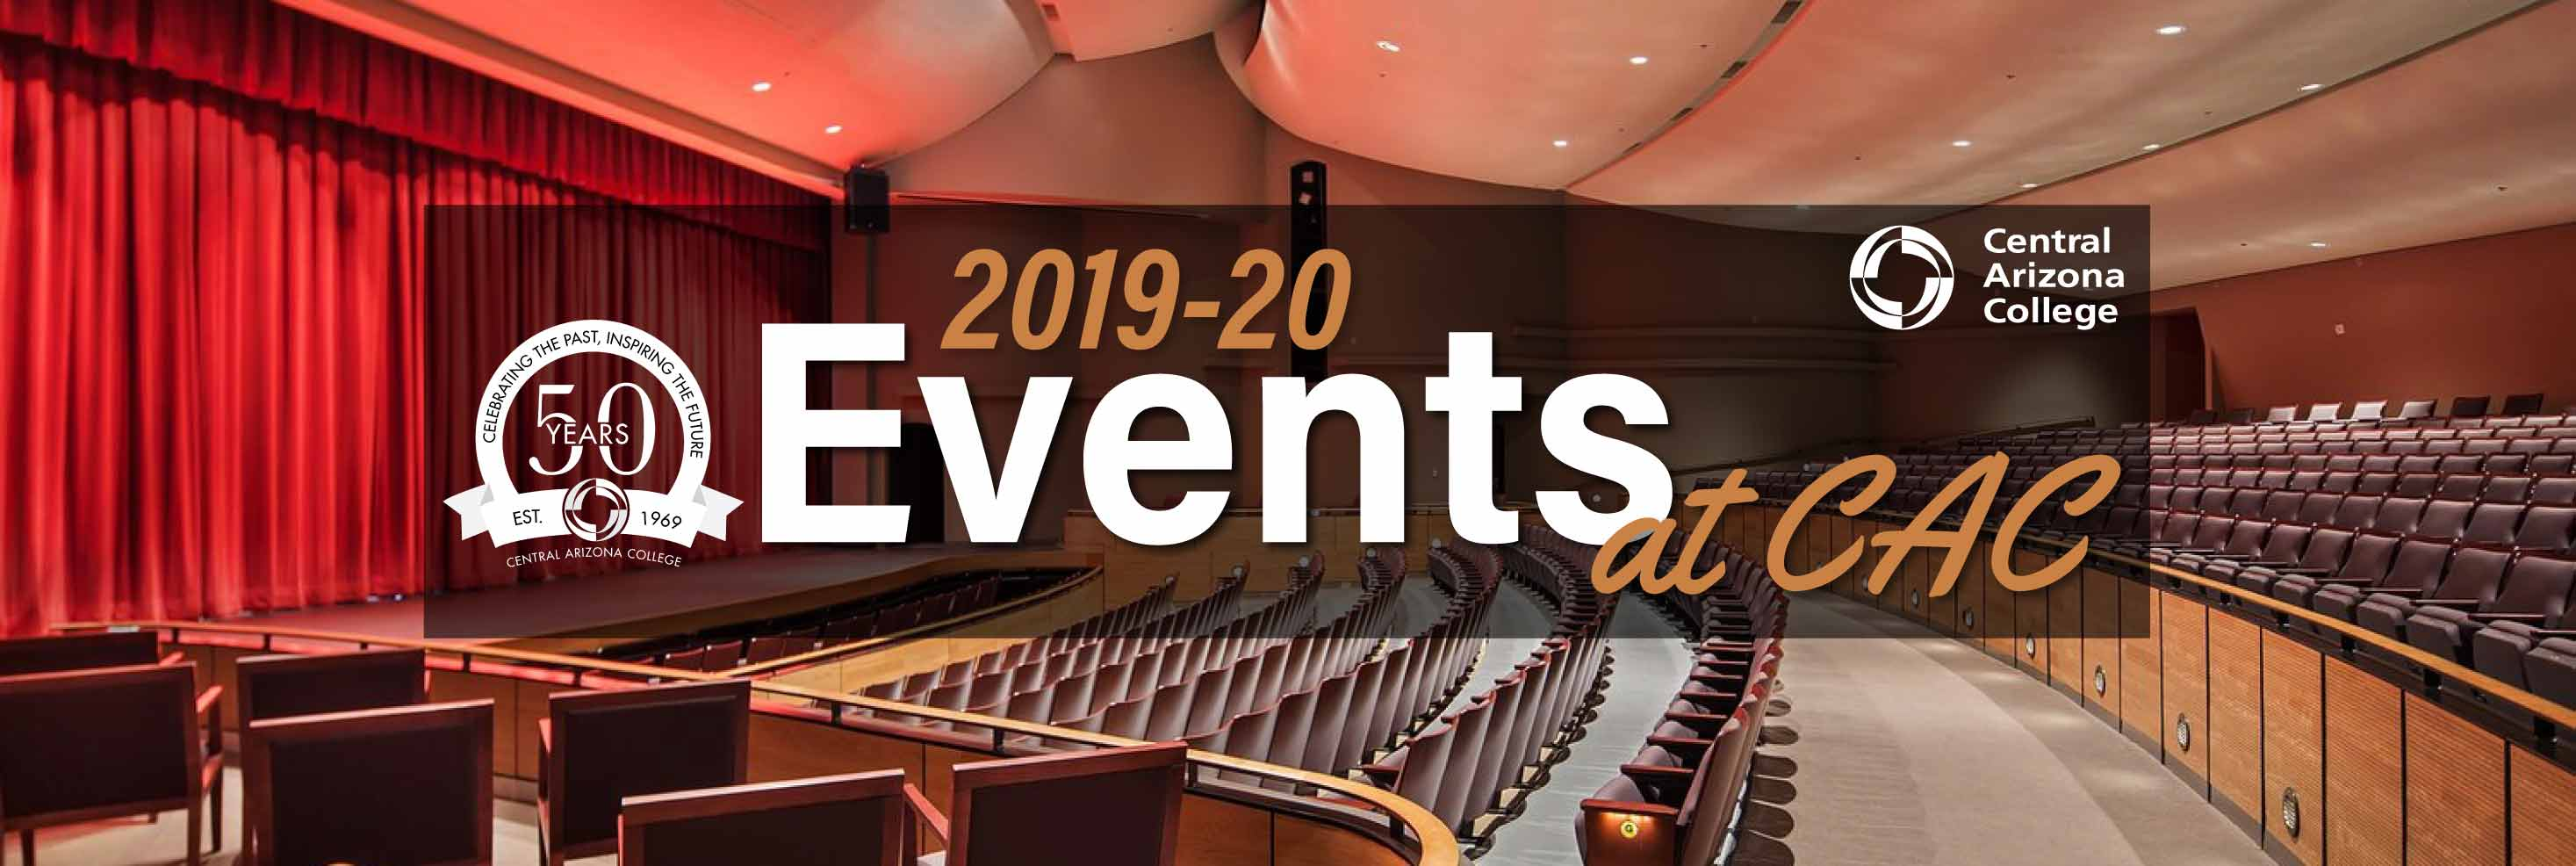 2019-20 Events at CAC - Pence